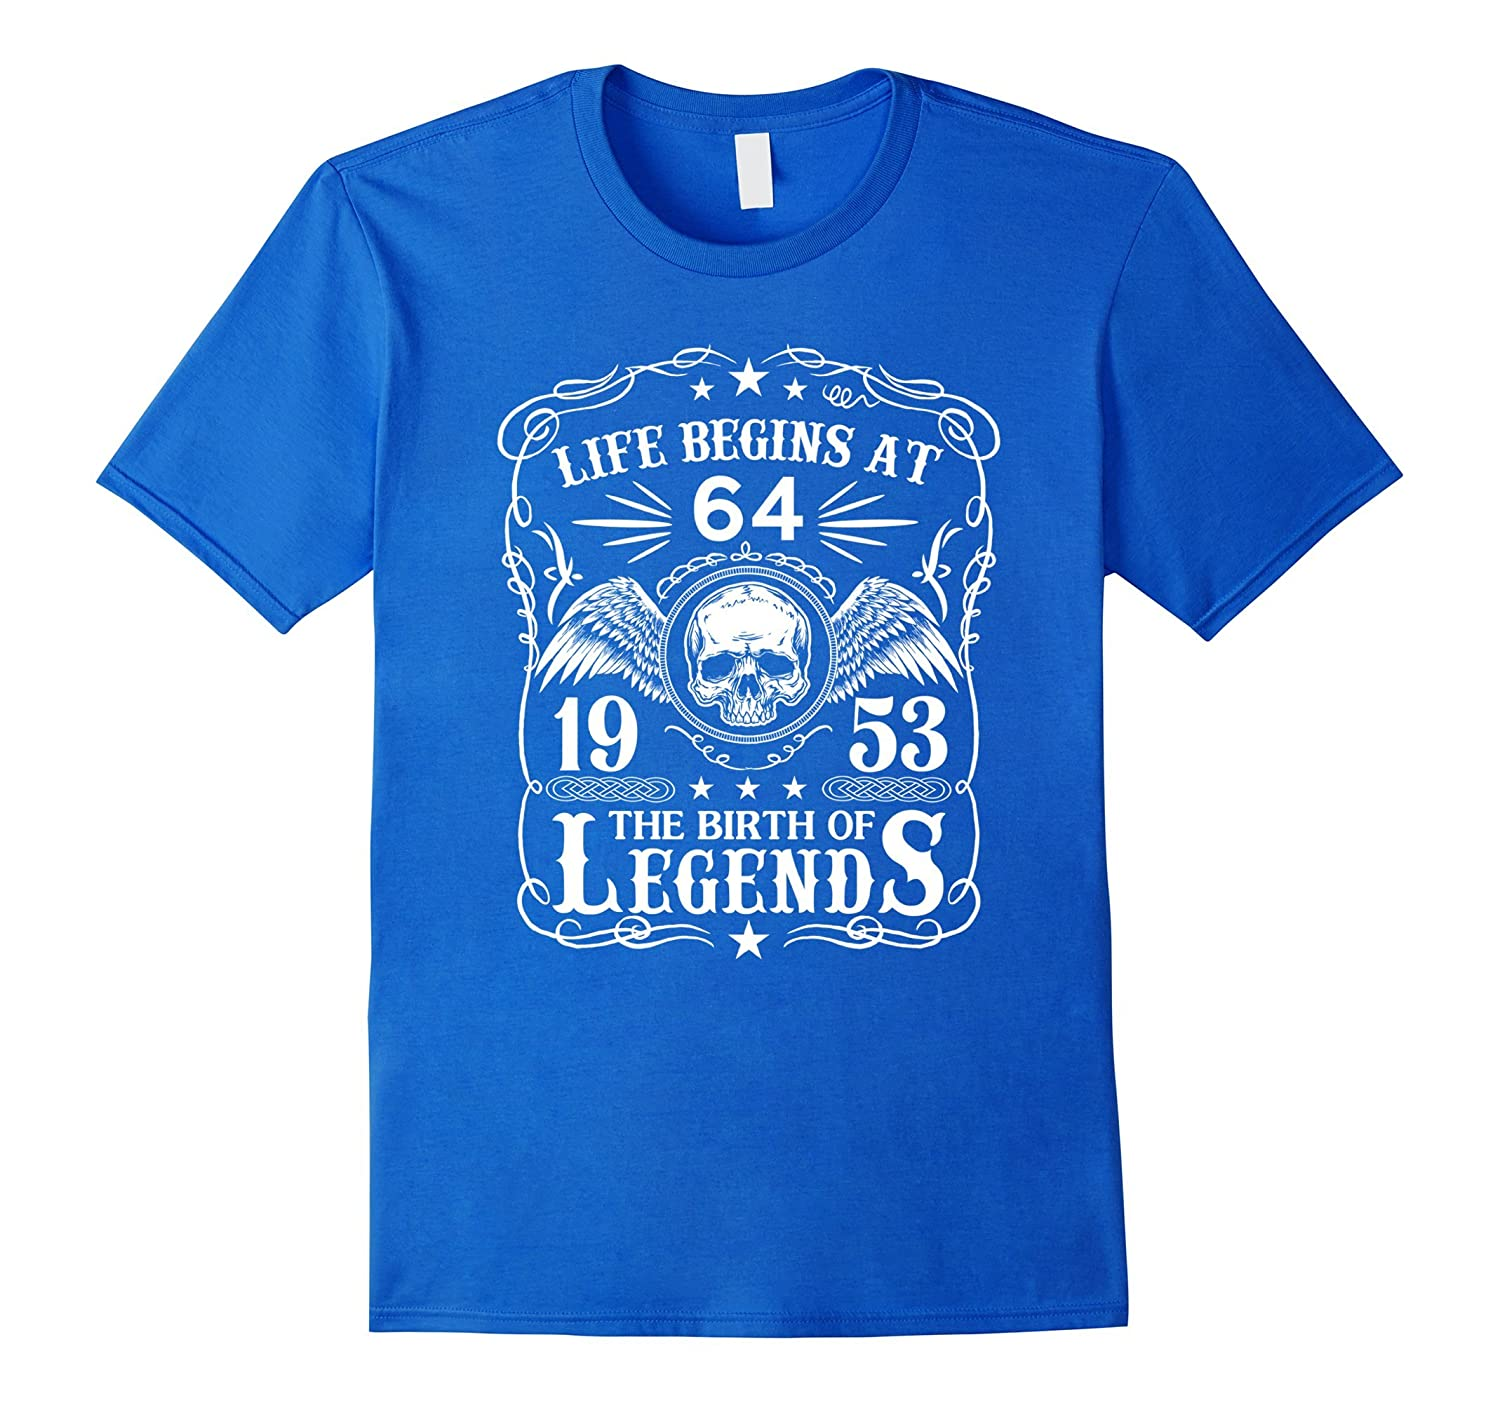 Life Begins At 64 - 1953 The Birth Of Legends tshirt-PL